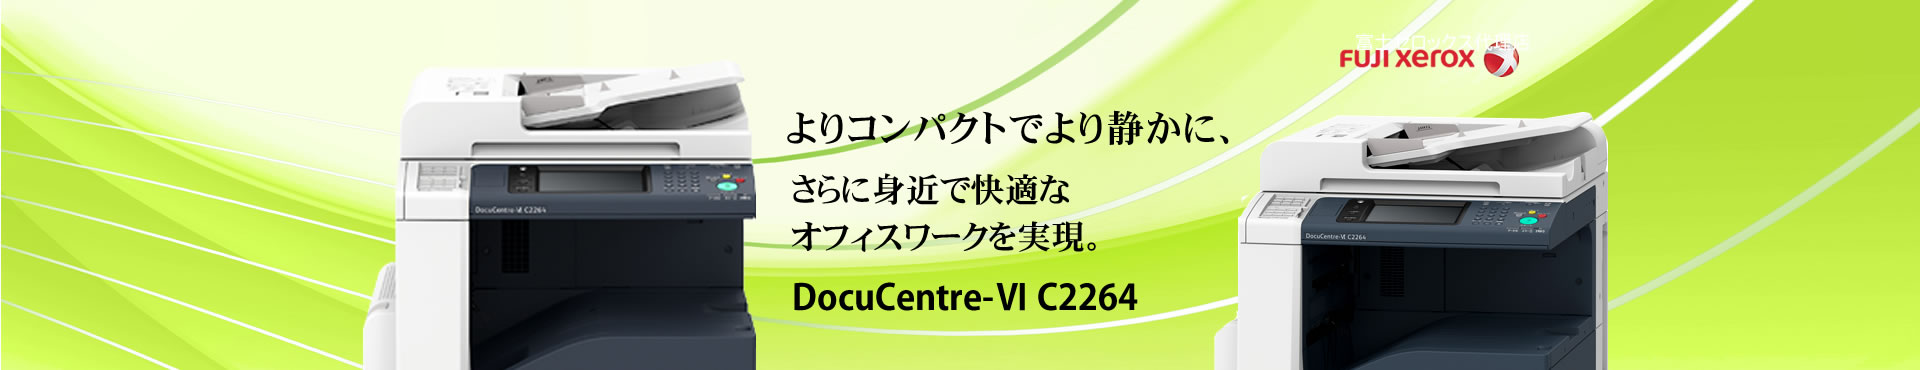 �J���[�����@ DocuCenter-�X c2263